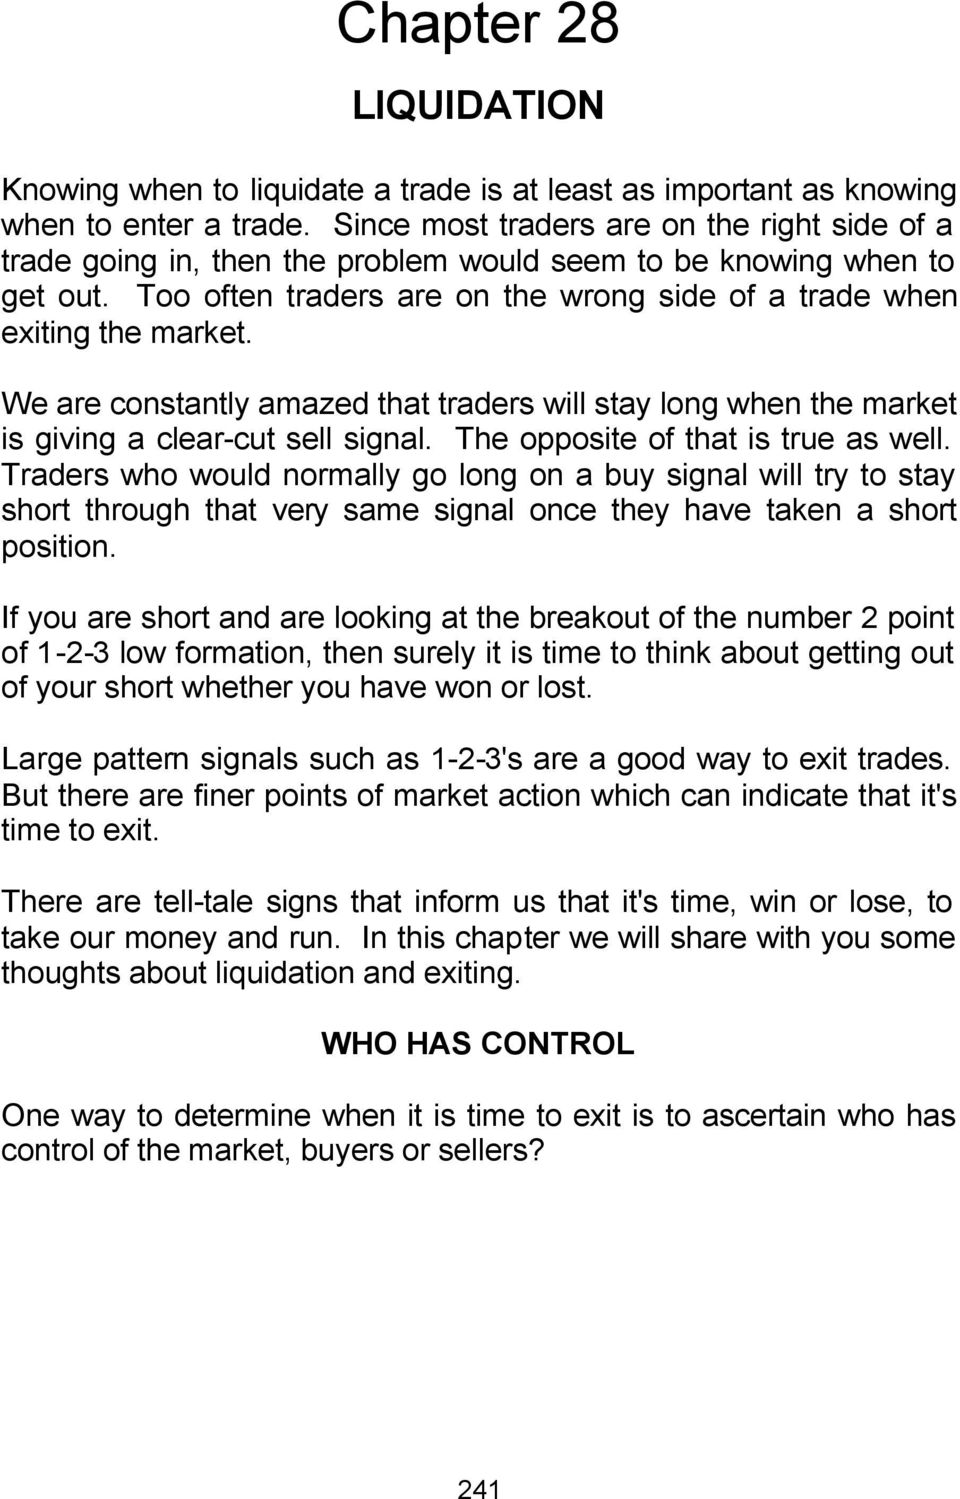 We are constantly amazed that traders will stay long when the market is giving a clear-cut sell signal. The opposite of that is true as well.